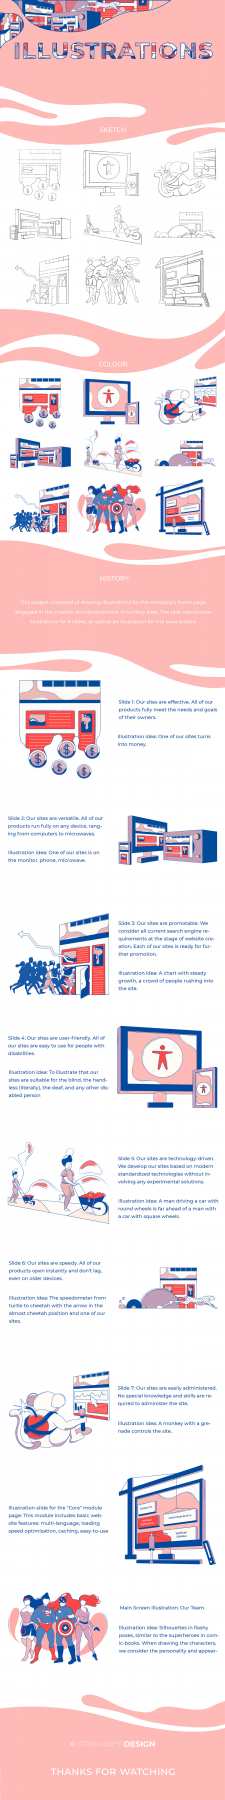 Illustrations for the company's home page